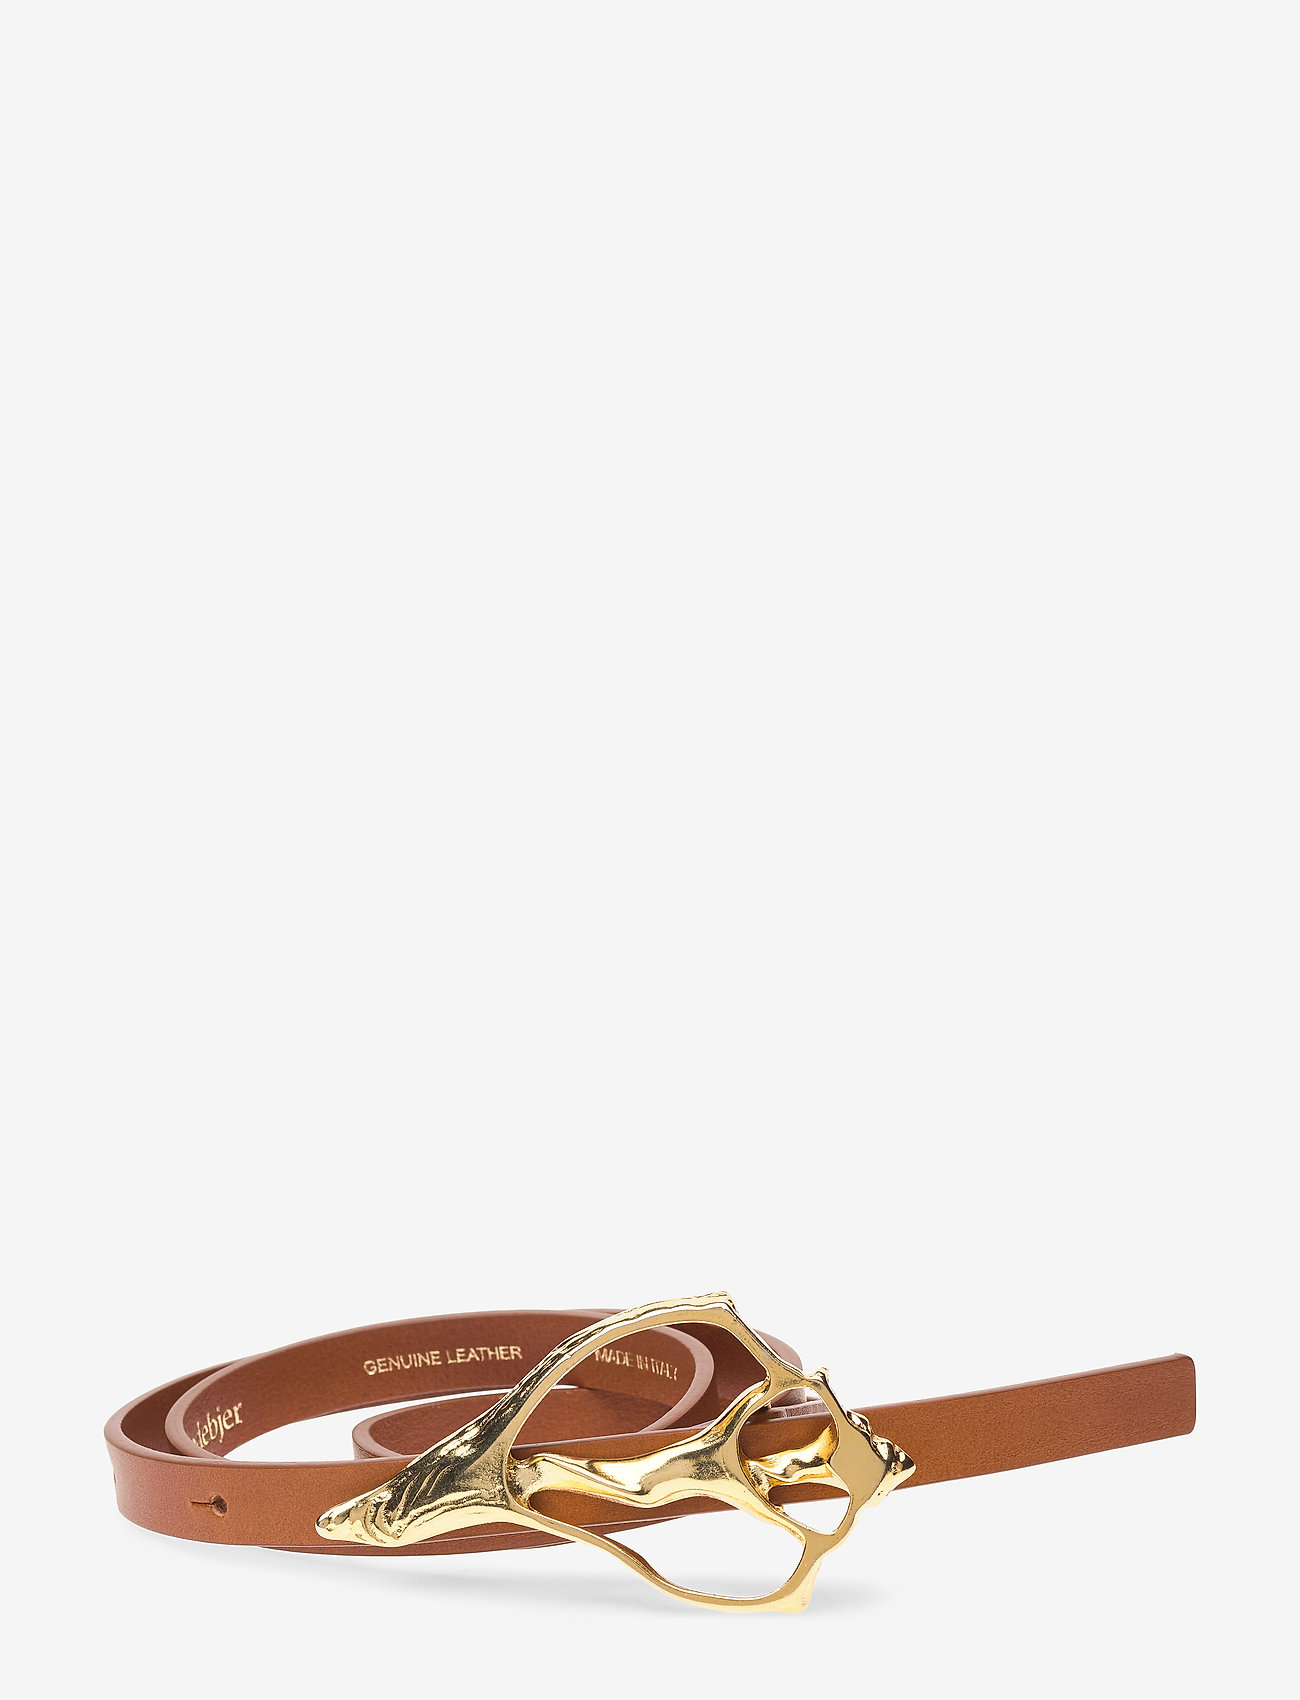 RODEBJER - RODEBJER SHELL - skärp - brown/gold - 0